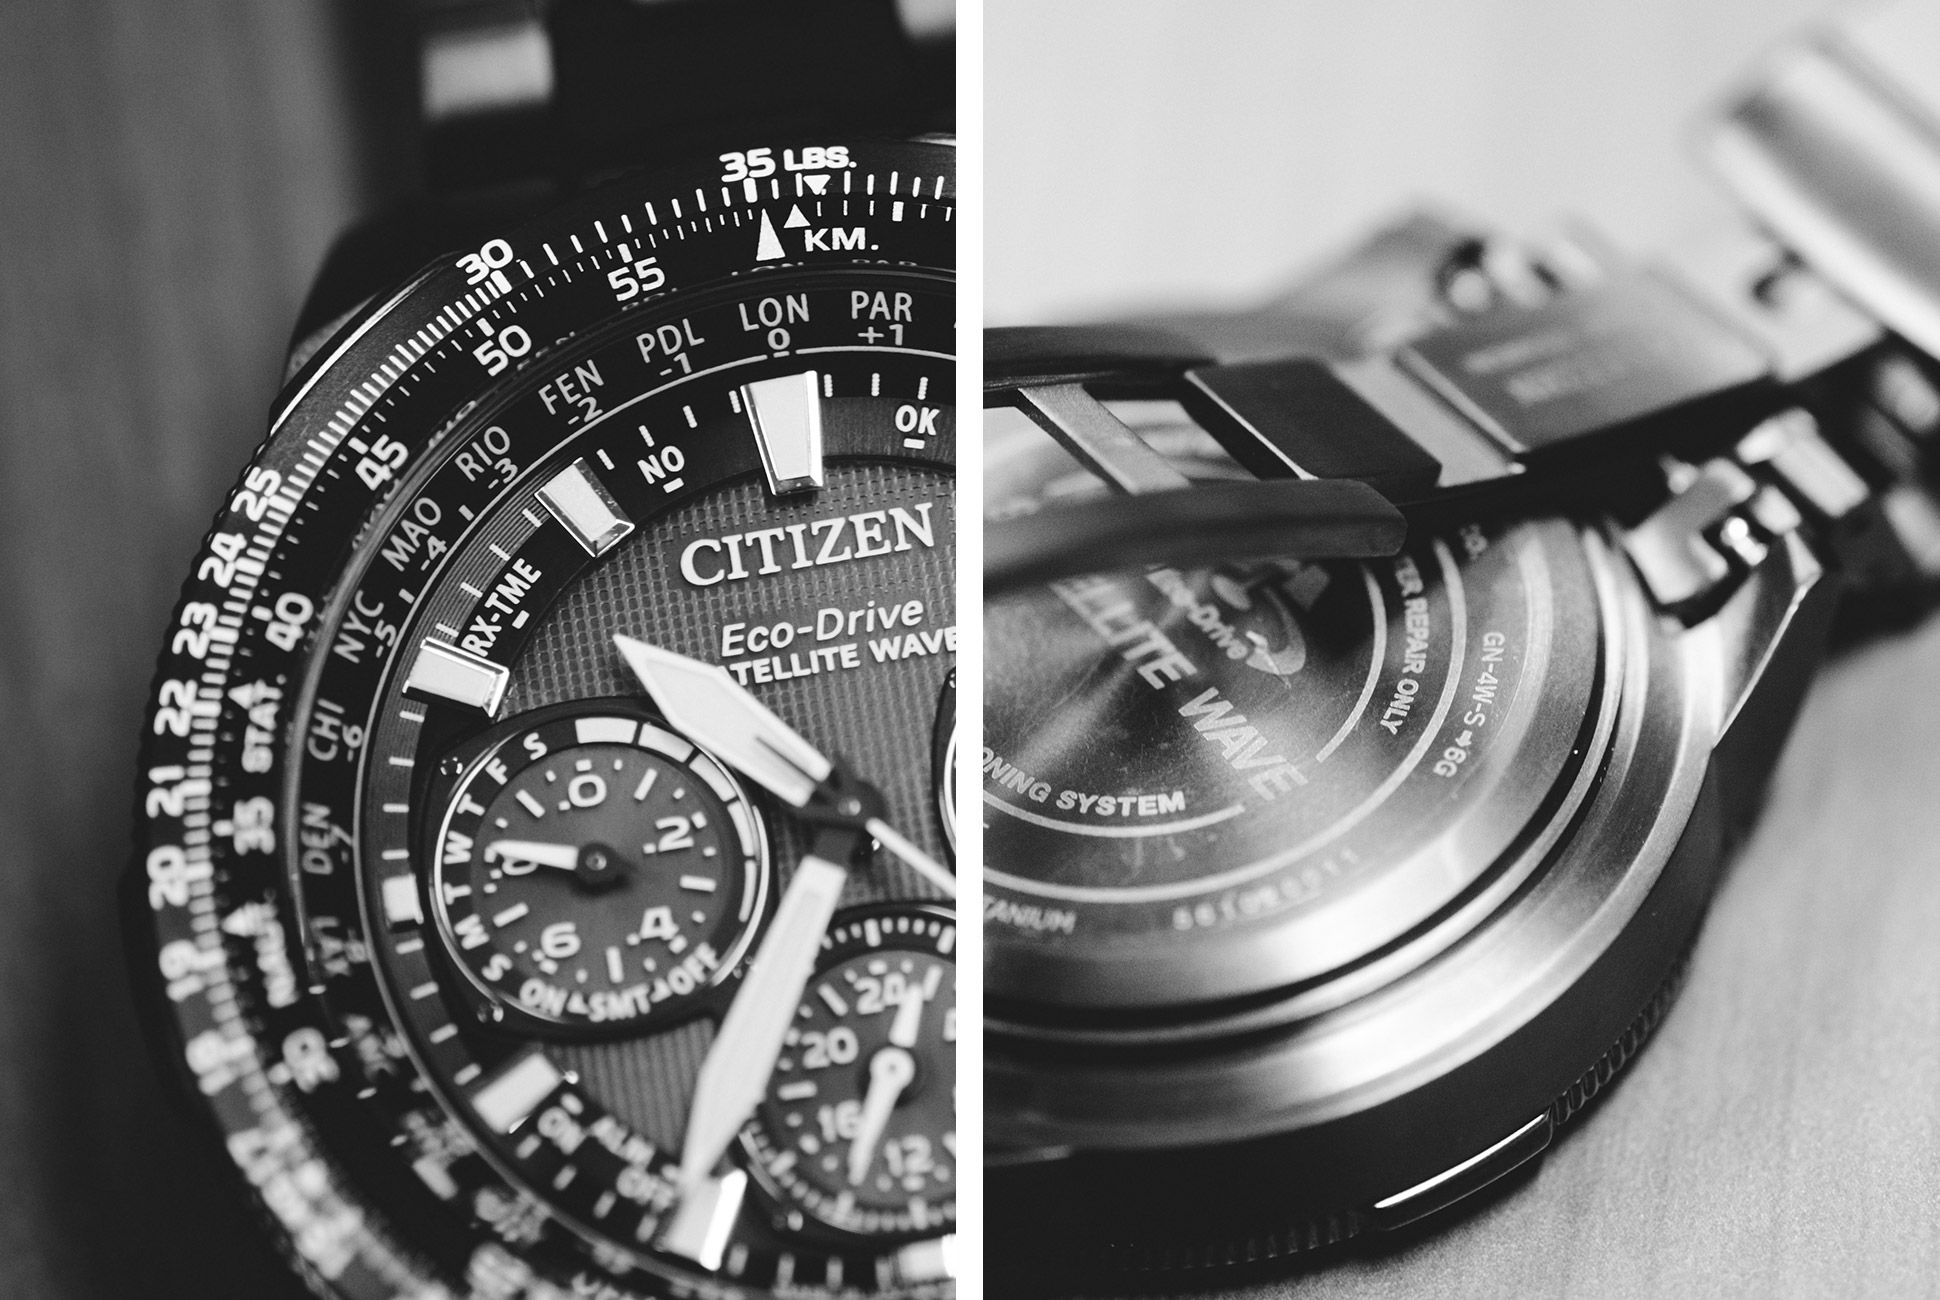 Citizen's unique Satellite Wave technology keeps accurate time across all 40 standard UTC timezones. It takes 3 seconds to sync and lock with a satellite signal.